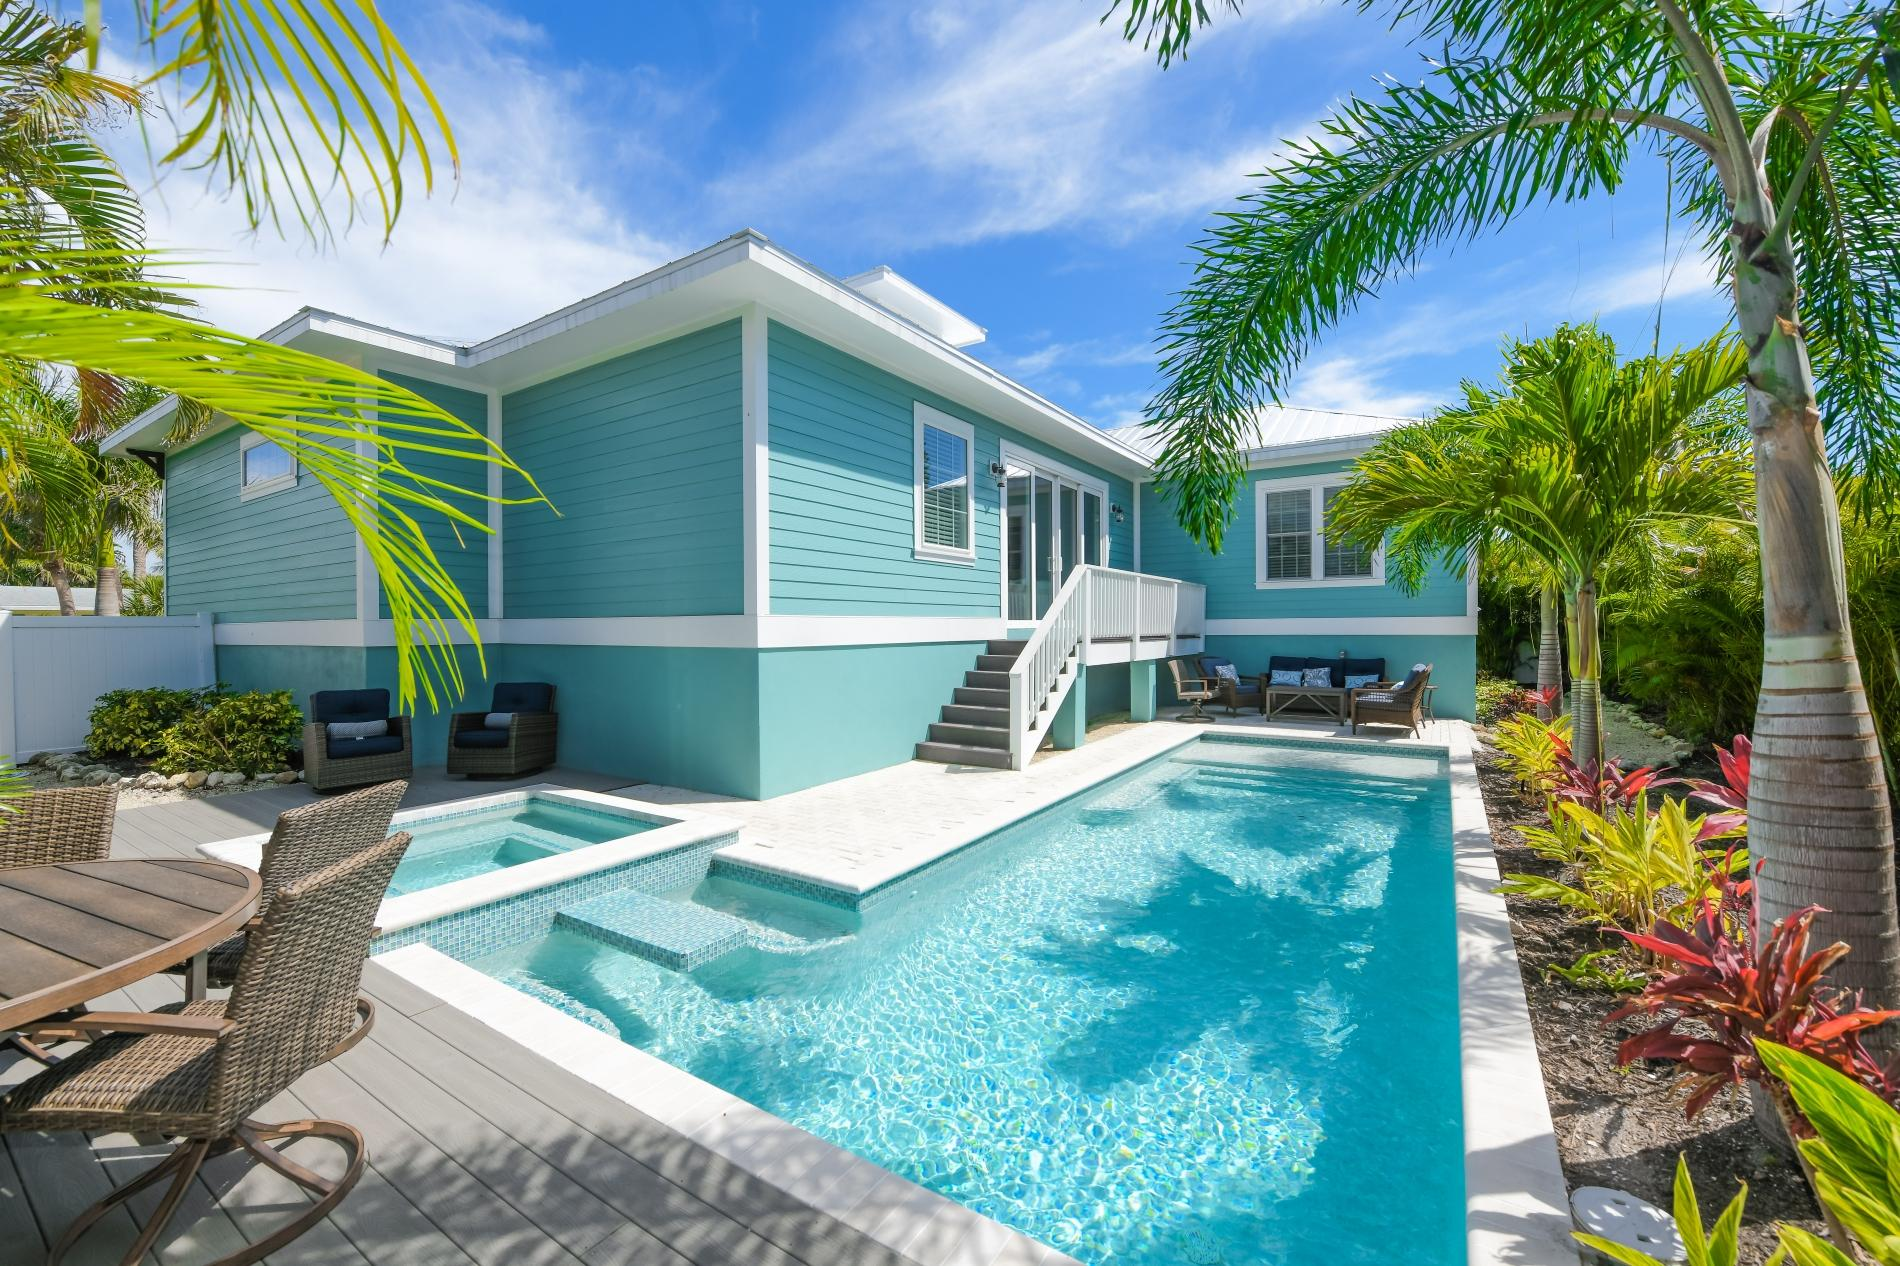 Beachy Keen - Vacation Rental in Holmes beach,FL | AMI Locals